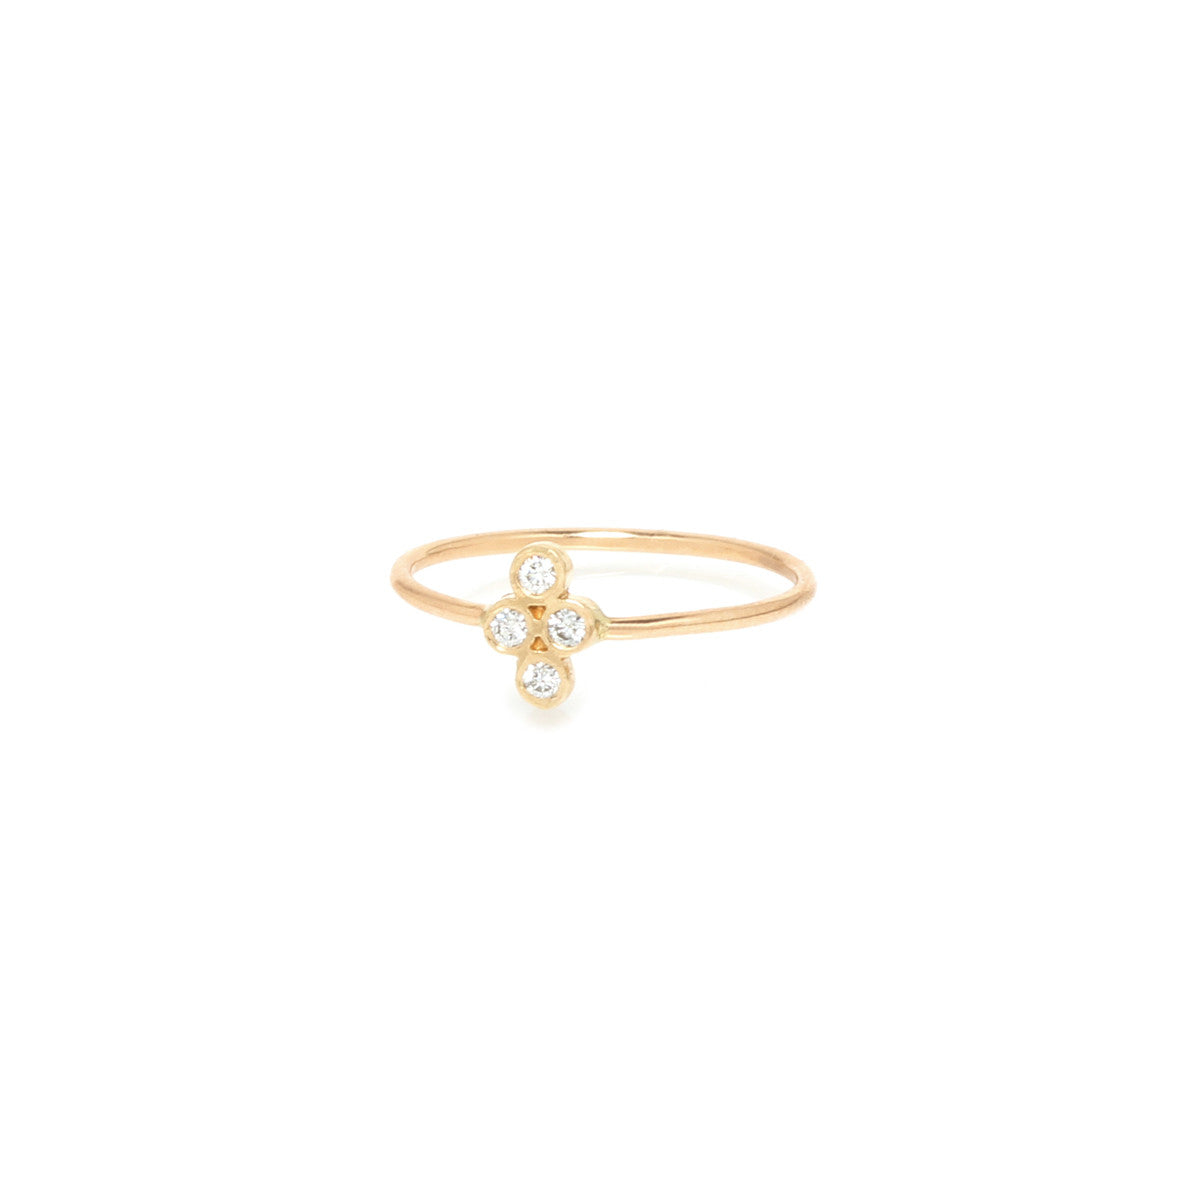 Zoë Chicco 14K Gold Diamond Quad Ring 3m4UPFZJY